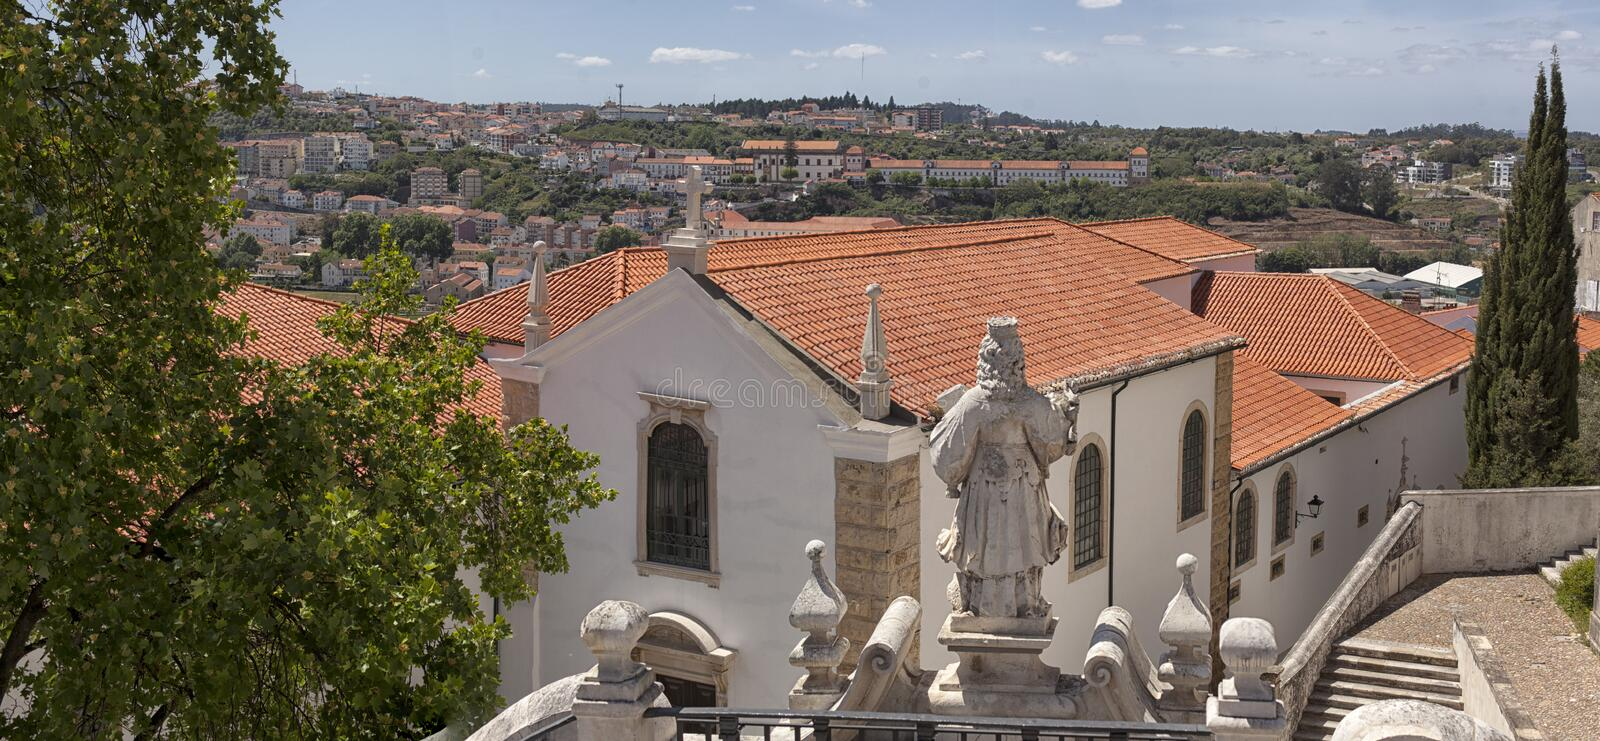 Coimbra portugal stock afbeelding